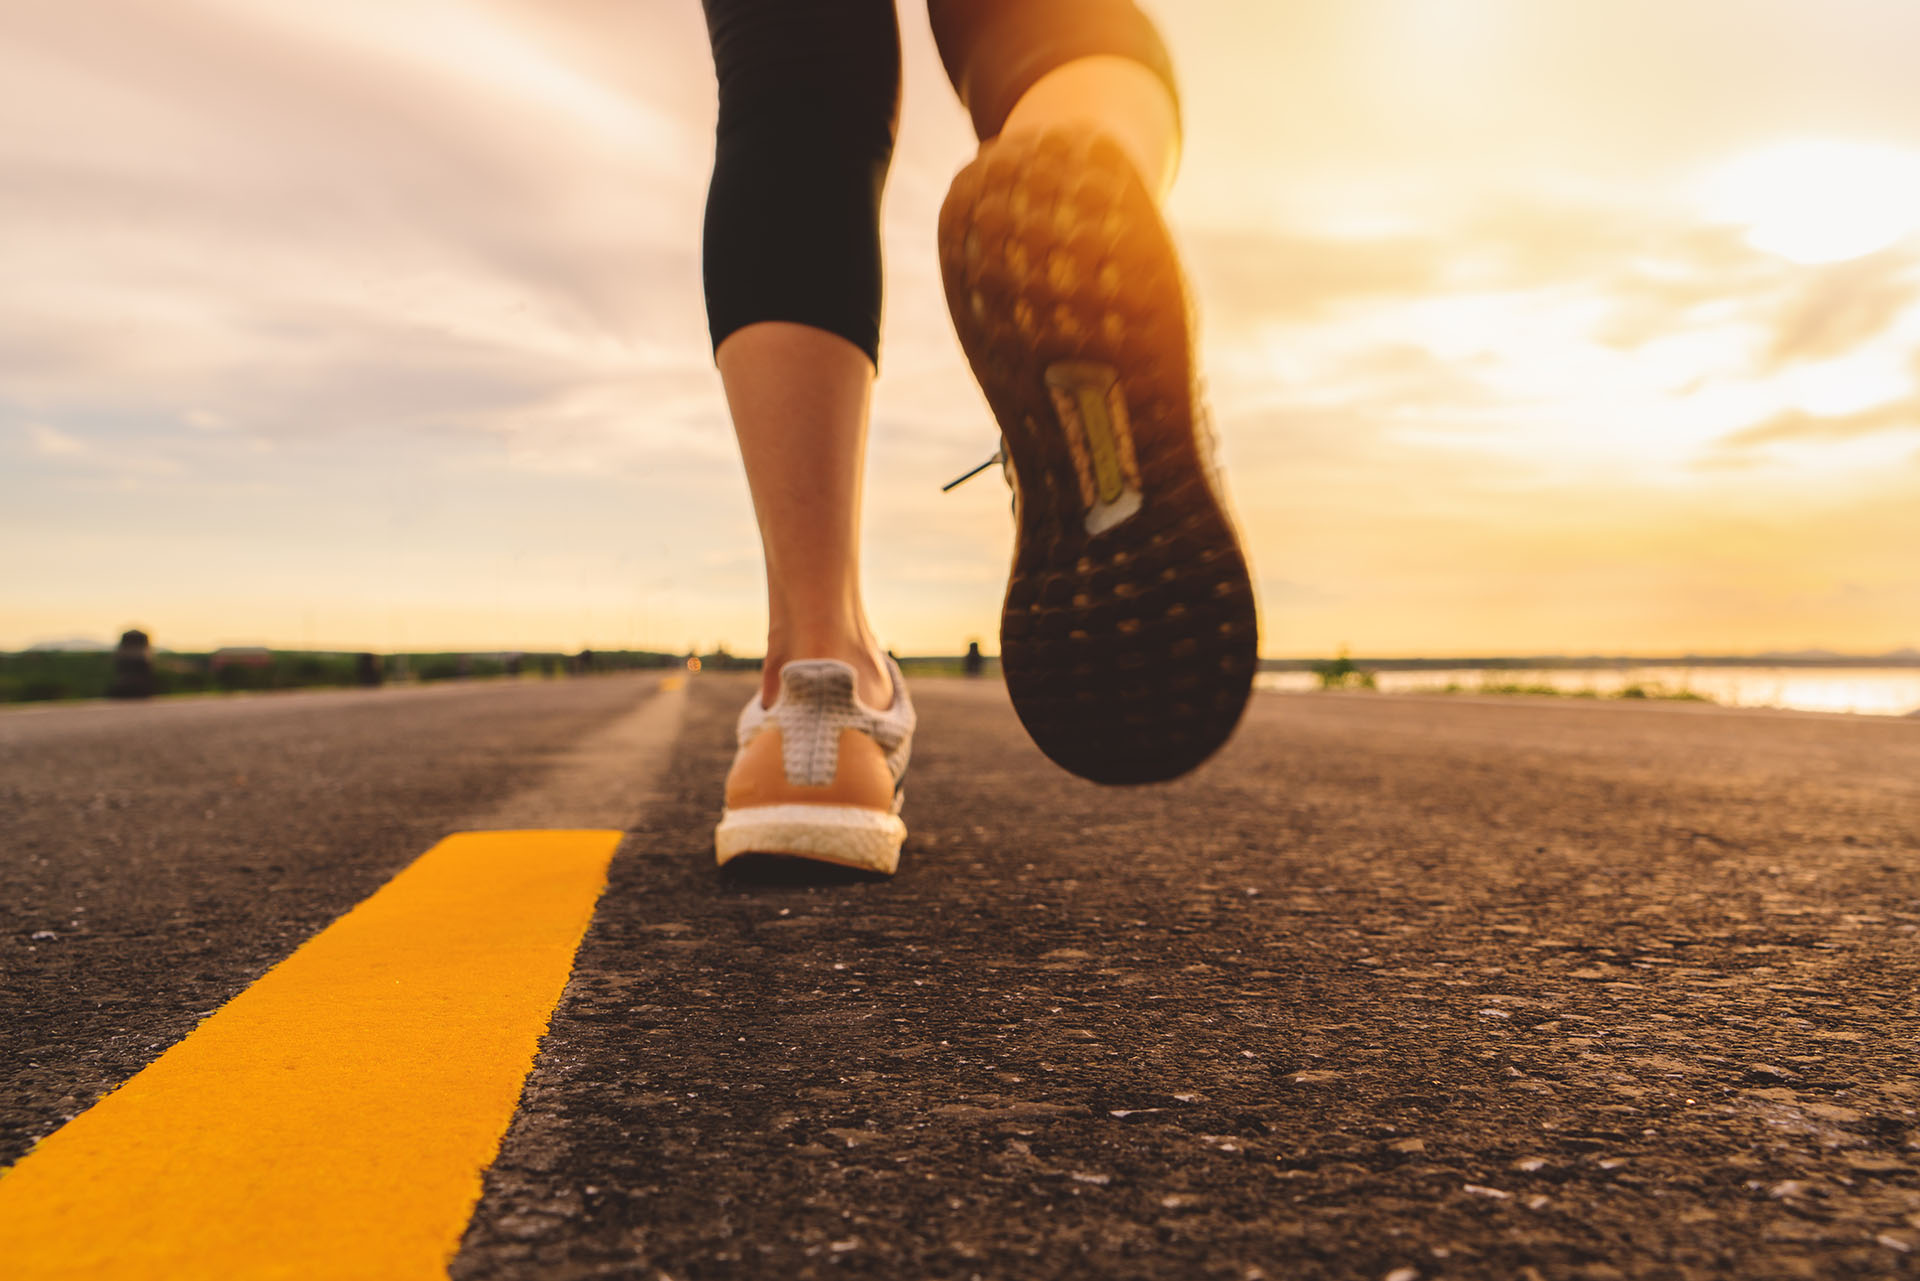 Athlete,Running,On,The,Road,Trail,In,Sunset,Training,For